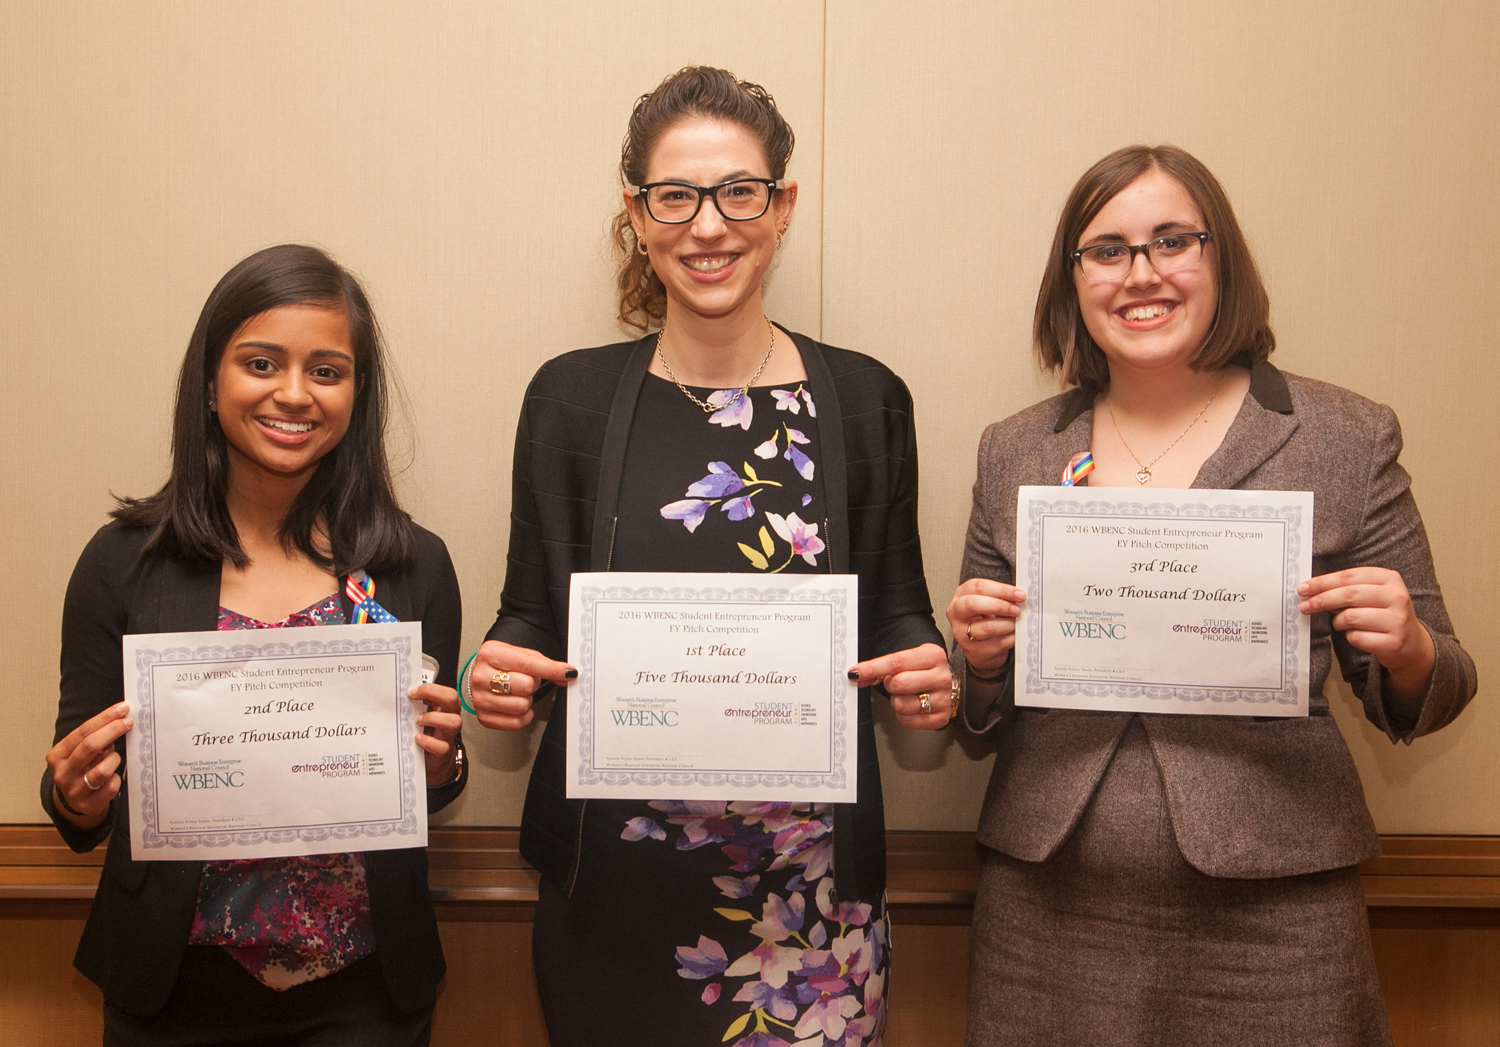 l - r: Mona Amin (2nd place); Ya-El Mandel-Portnoy (1st place) and Emily Bocchino (3rd place)